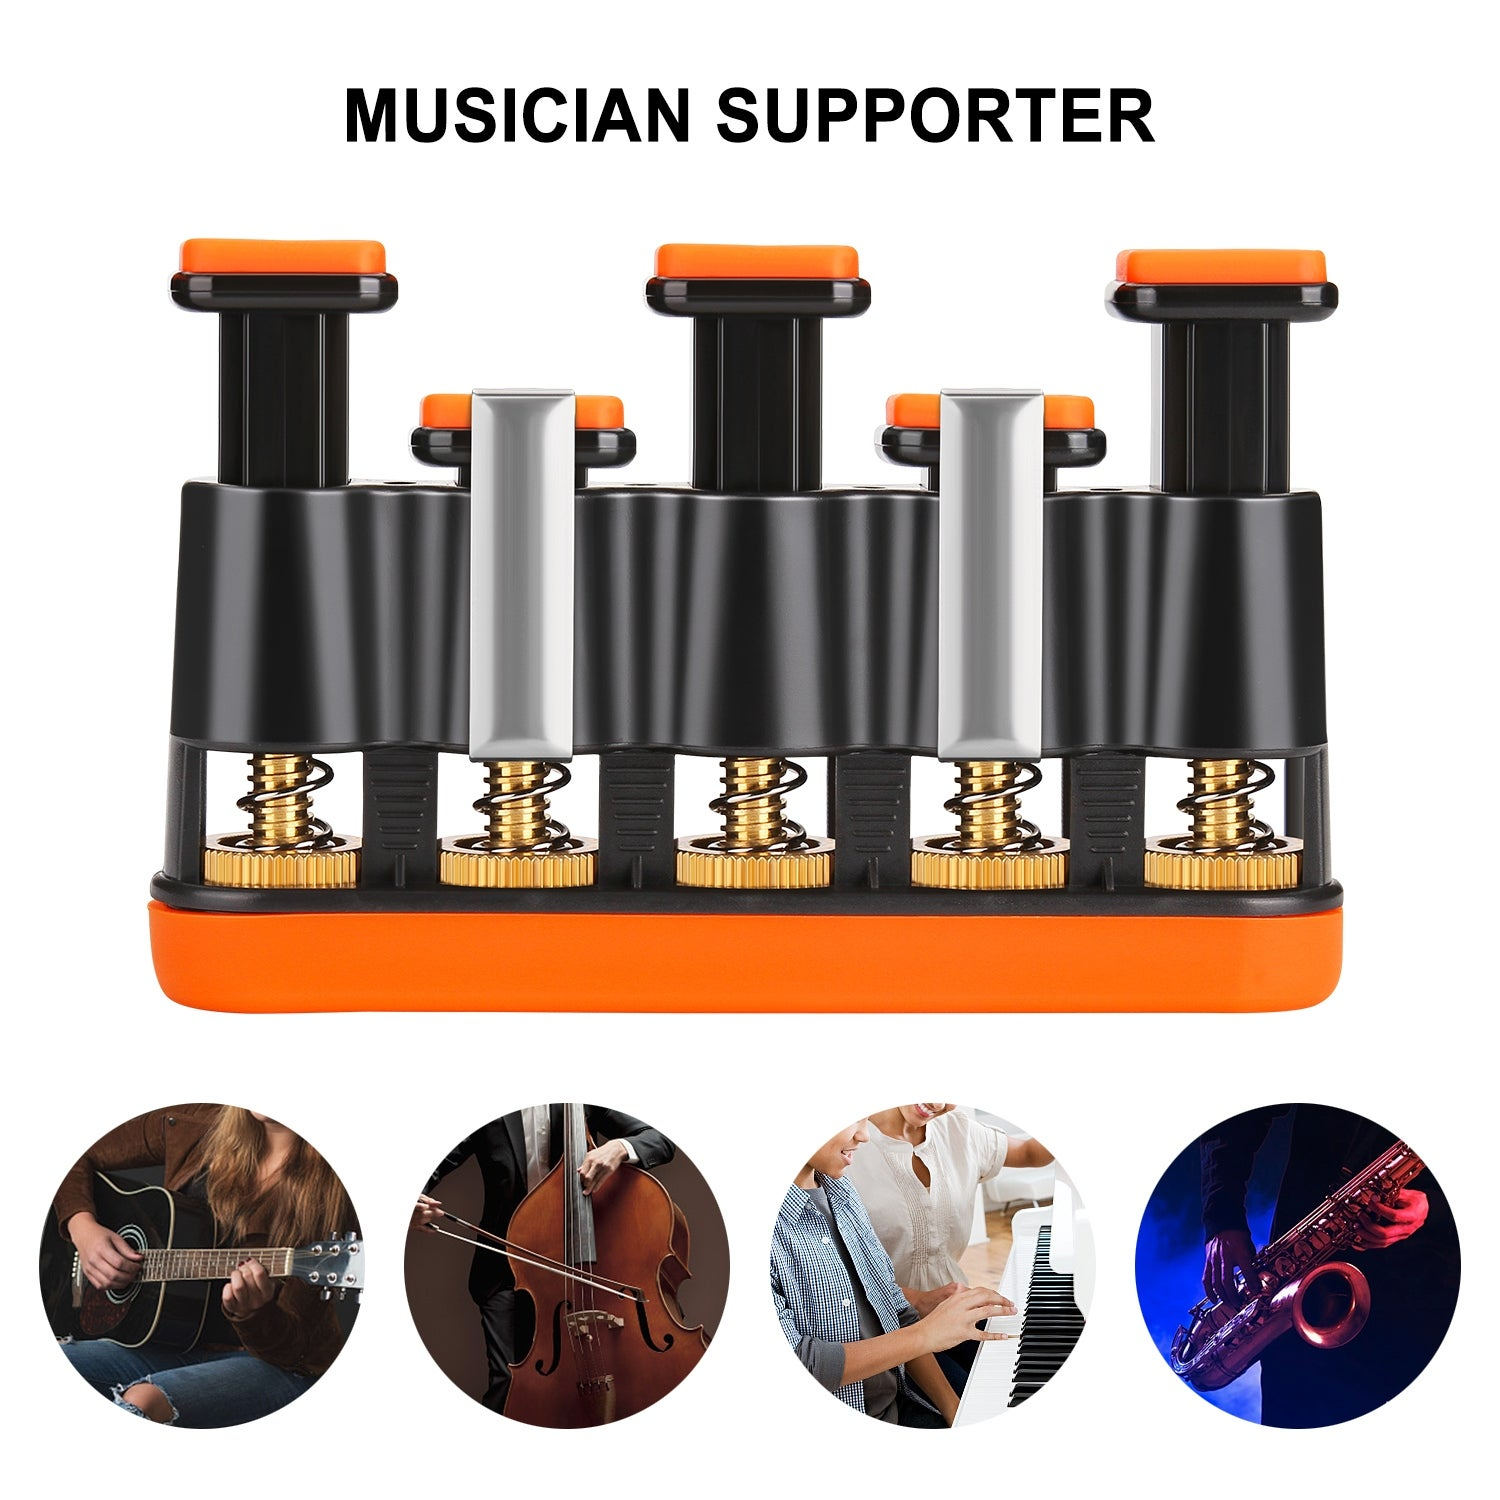 Professional Guitar Hand Finger Exerciser 4 Adjustable Tension Hand Grip Trainer Musical Instruments & Gear